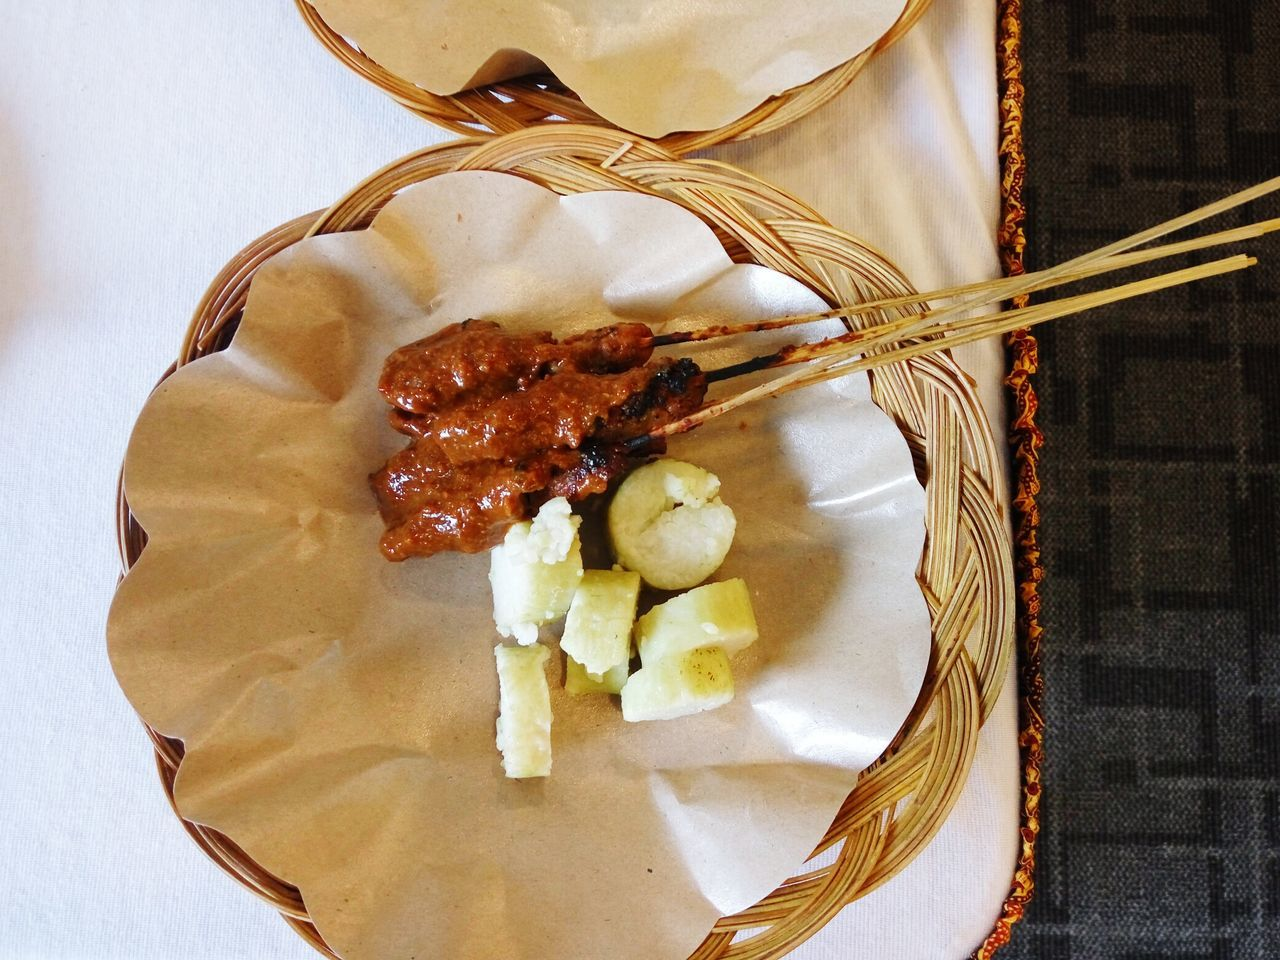 Sate Ayam (Indonesian Chicken Satay) Food And Drink Indoors  Food Close-up No People Ready-to-eat INDONESIA Temptation Serving Size